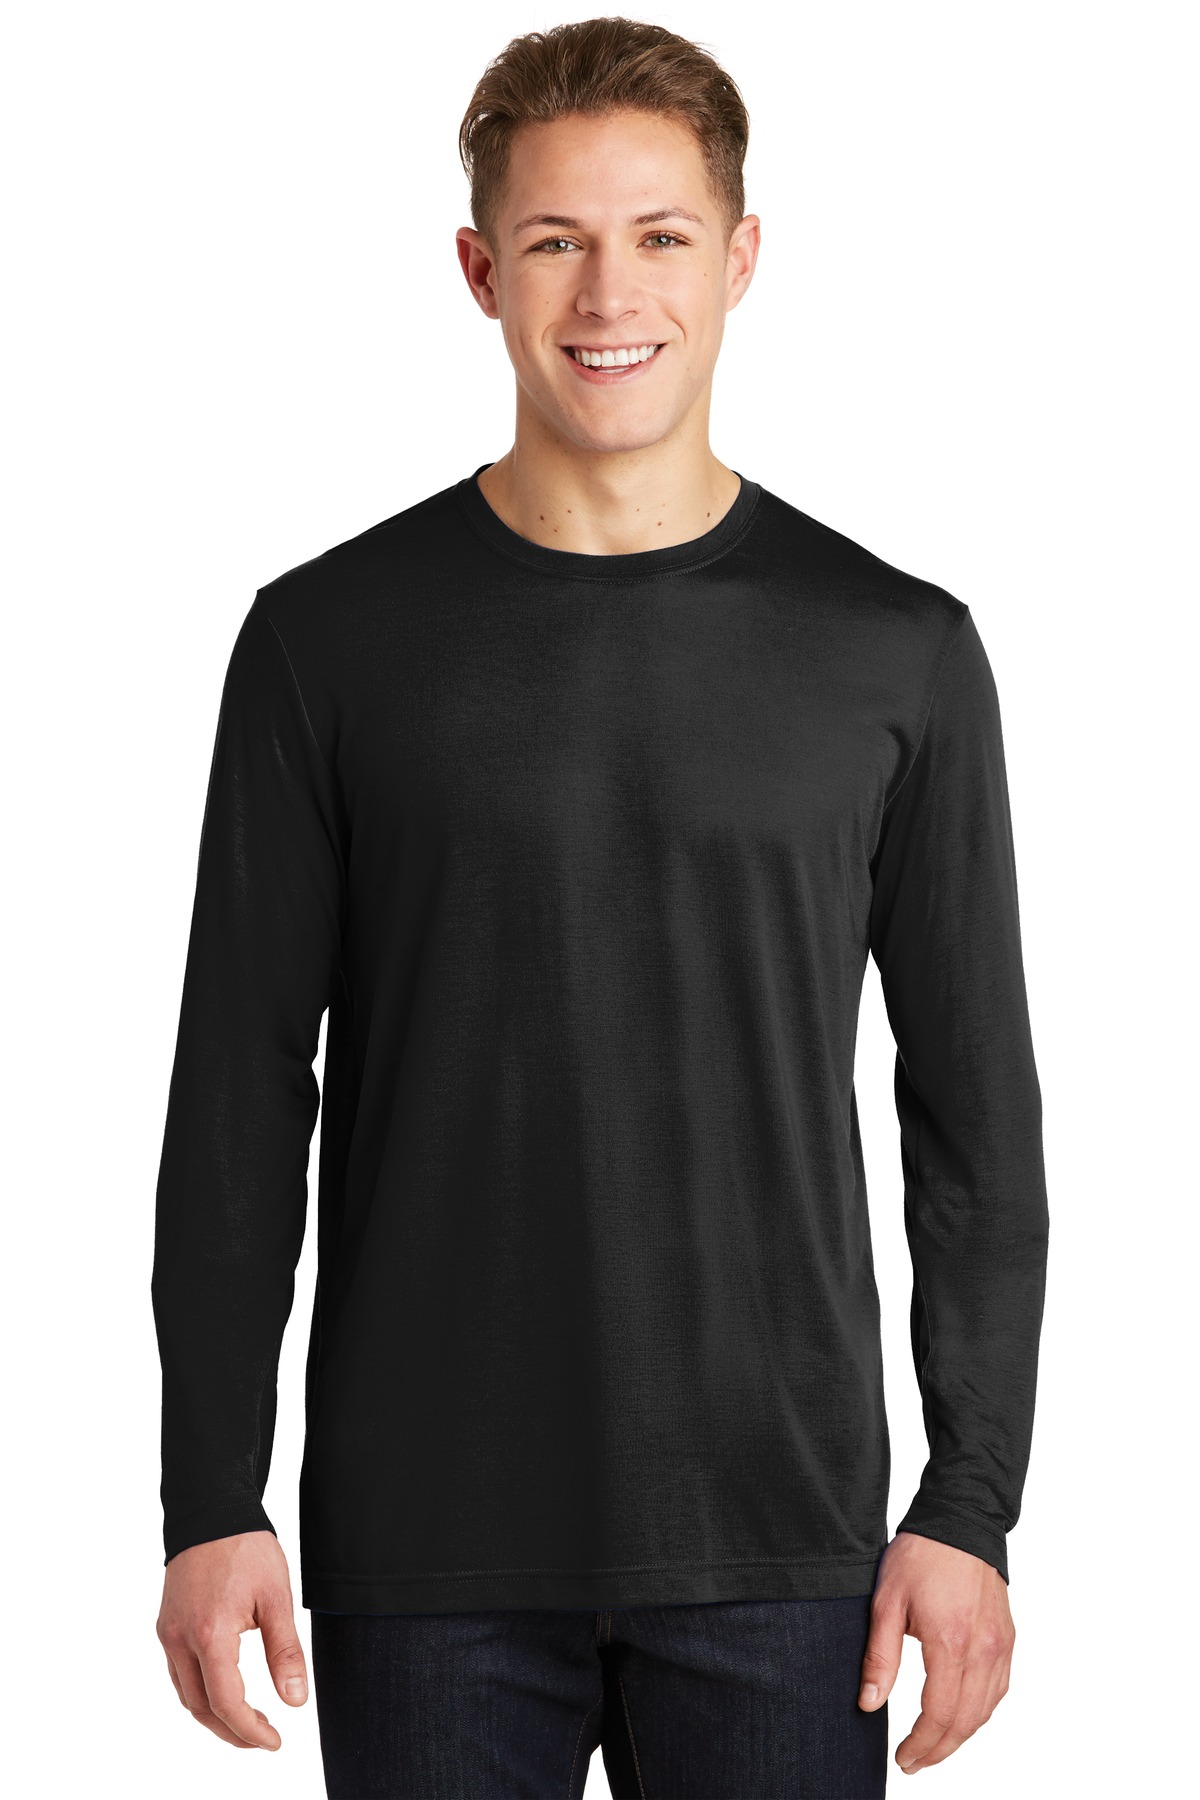 Sport-Tek ®  Long Sleeve PosiCharge ®  Competitor ™  Cotton Touch ™  Tee. ST450LS - Black